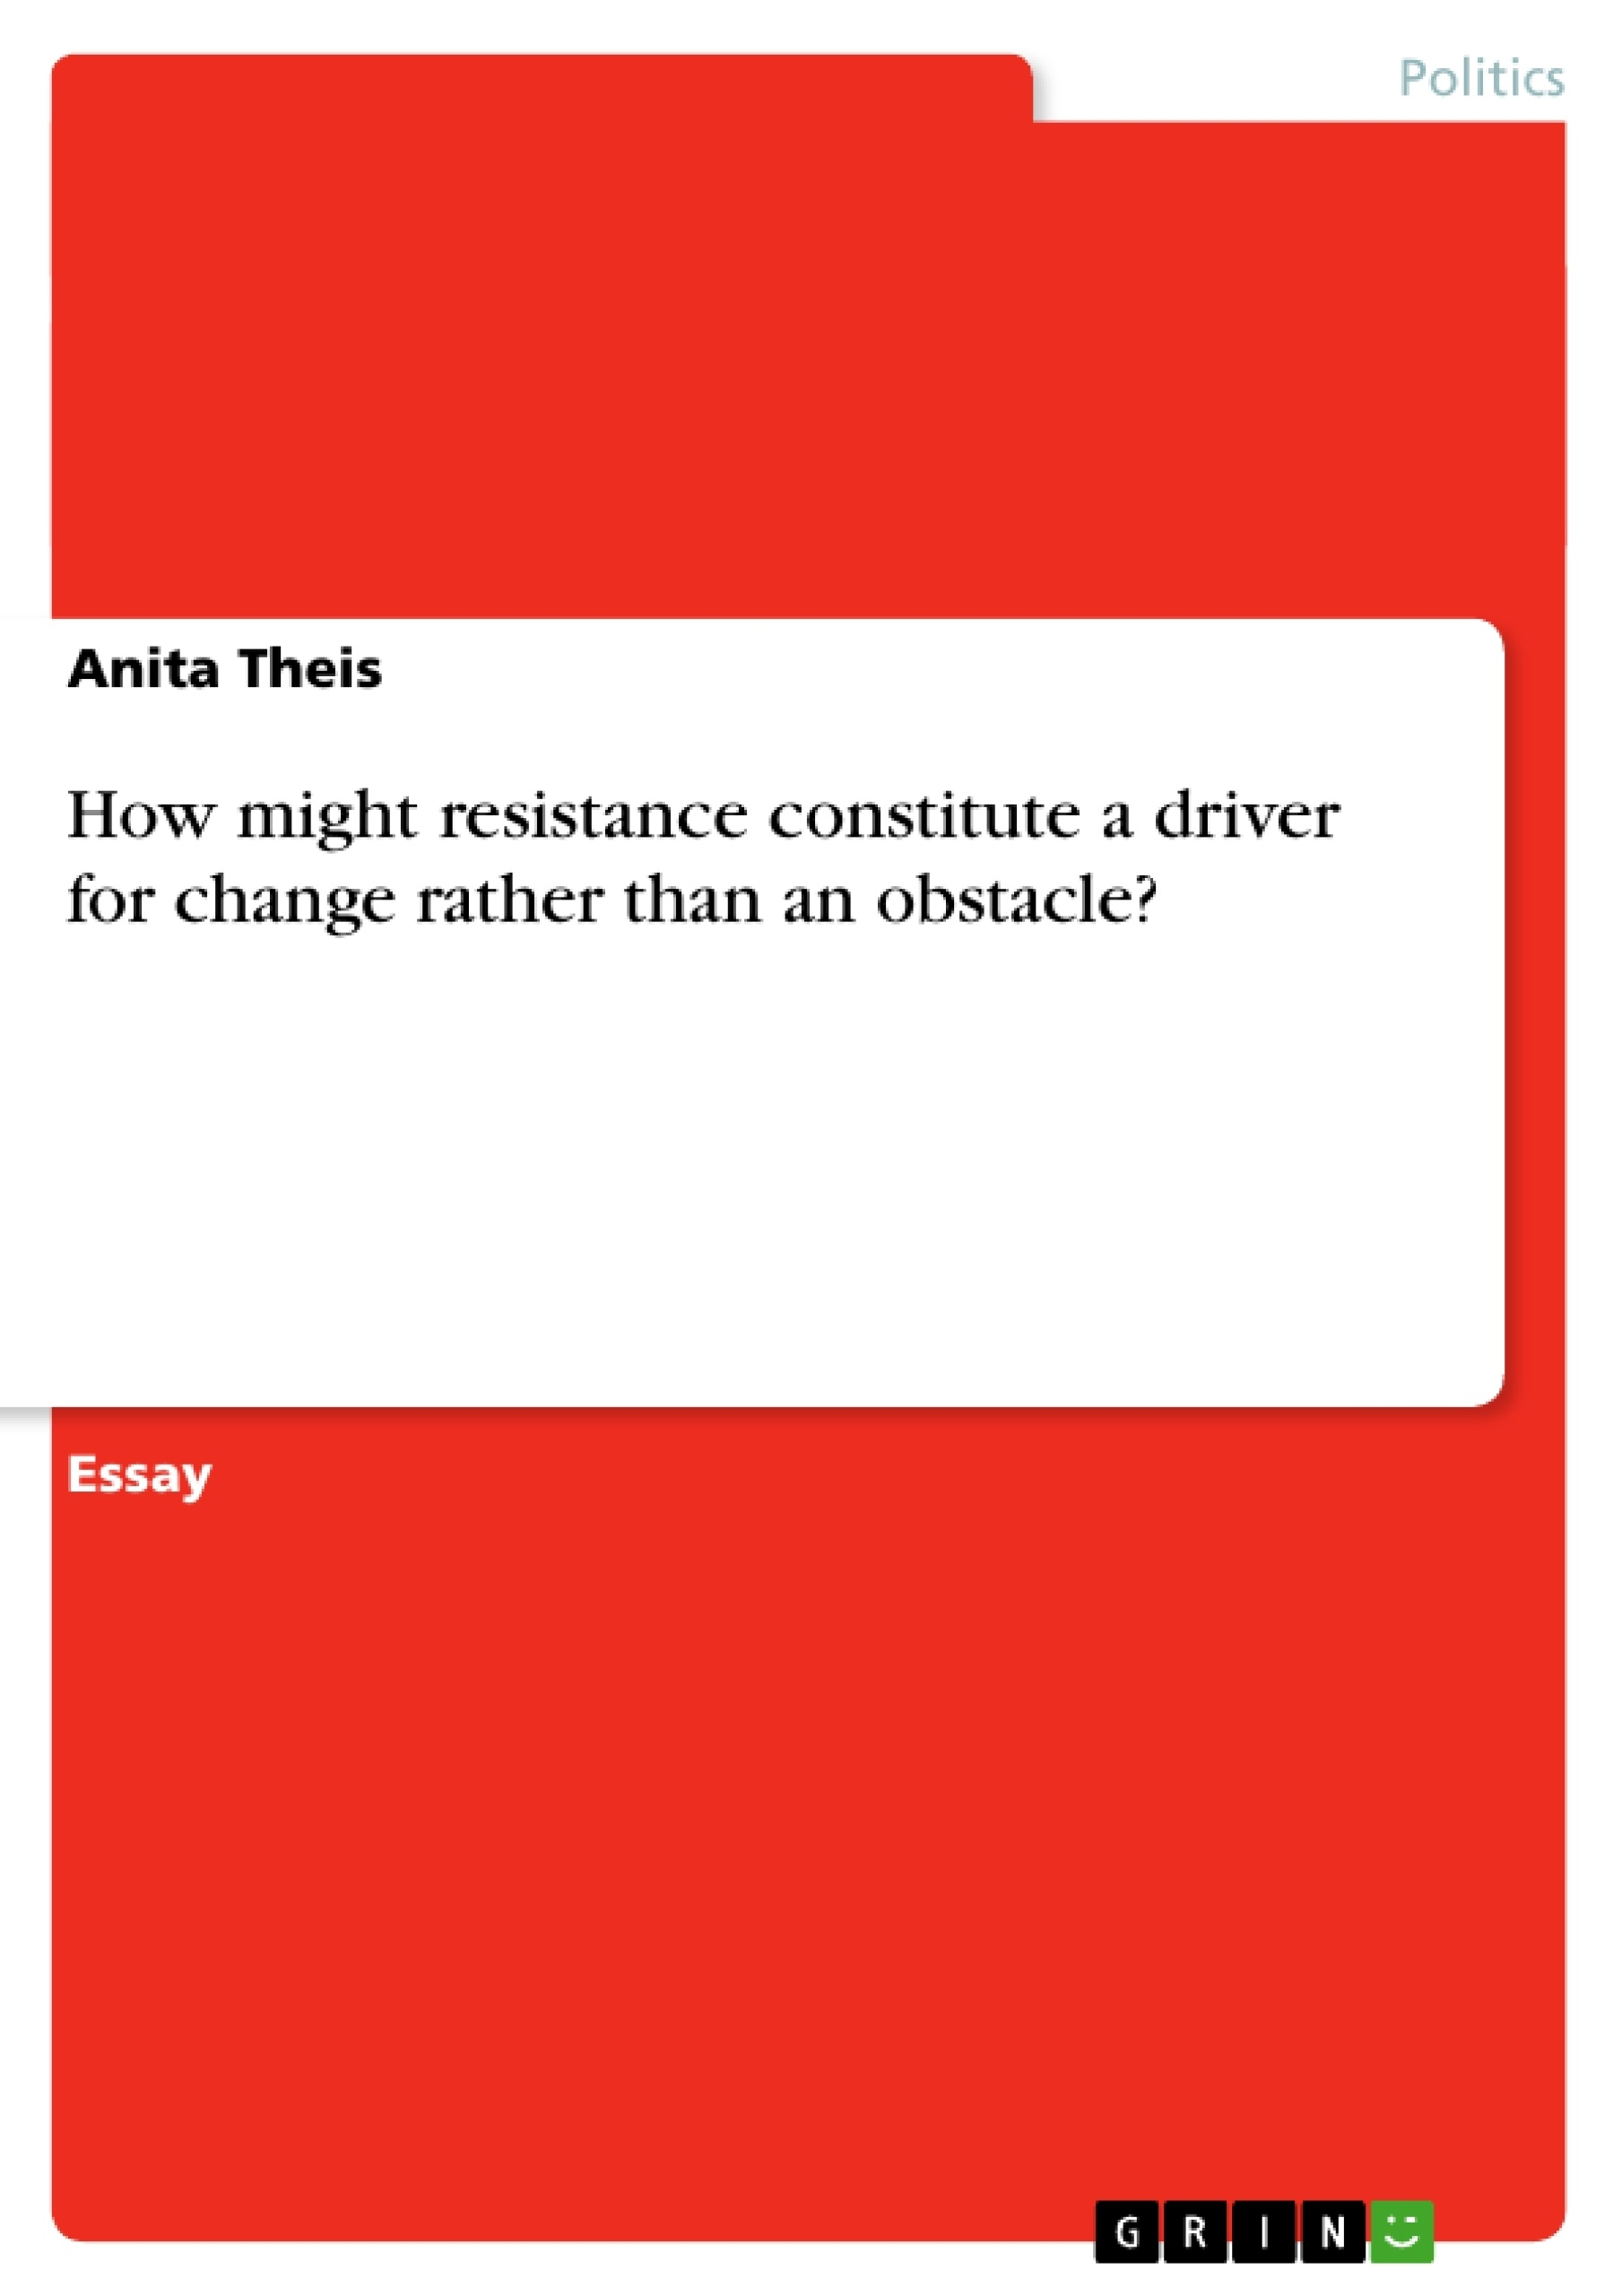 Title: How might resistance constitute a driver for change rather than an obstacle?